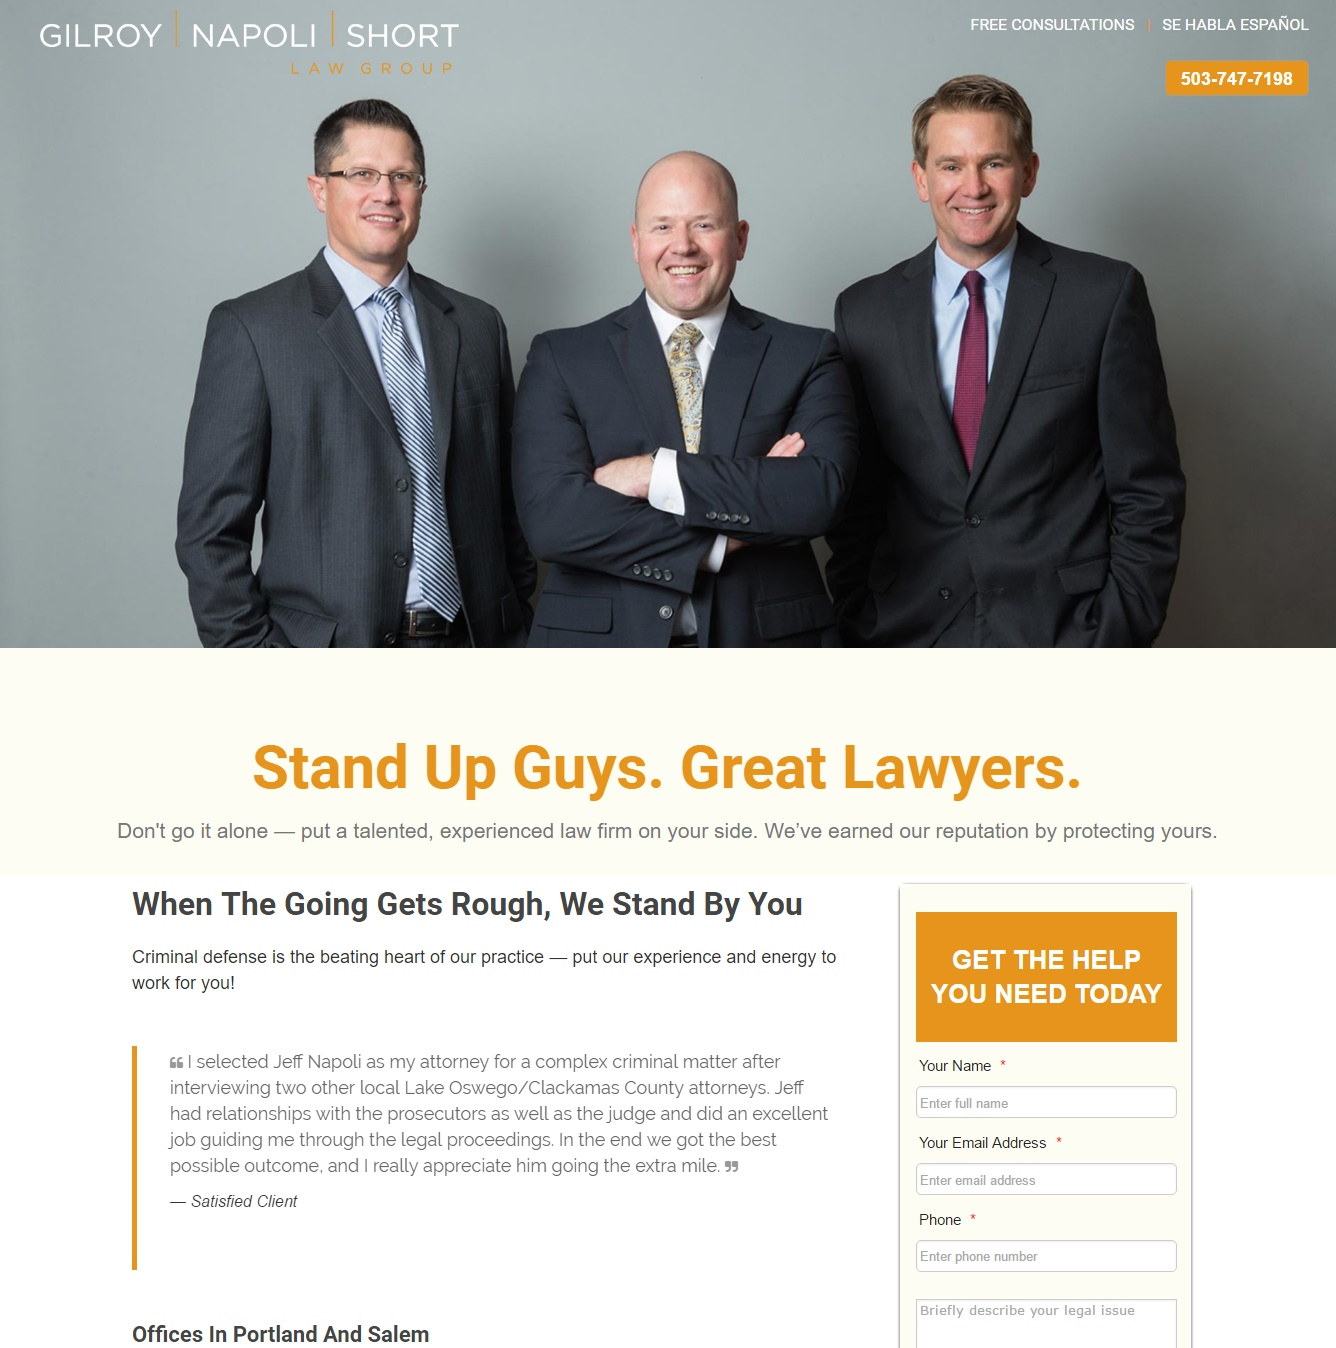 Gilroy Napoli Short Law Group LLP Image